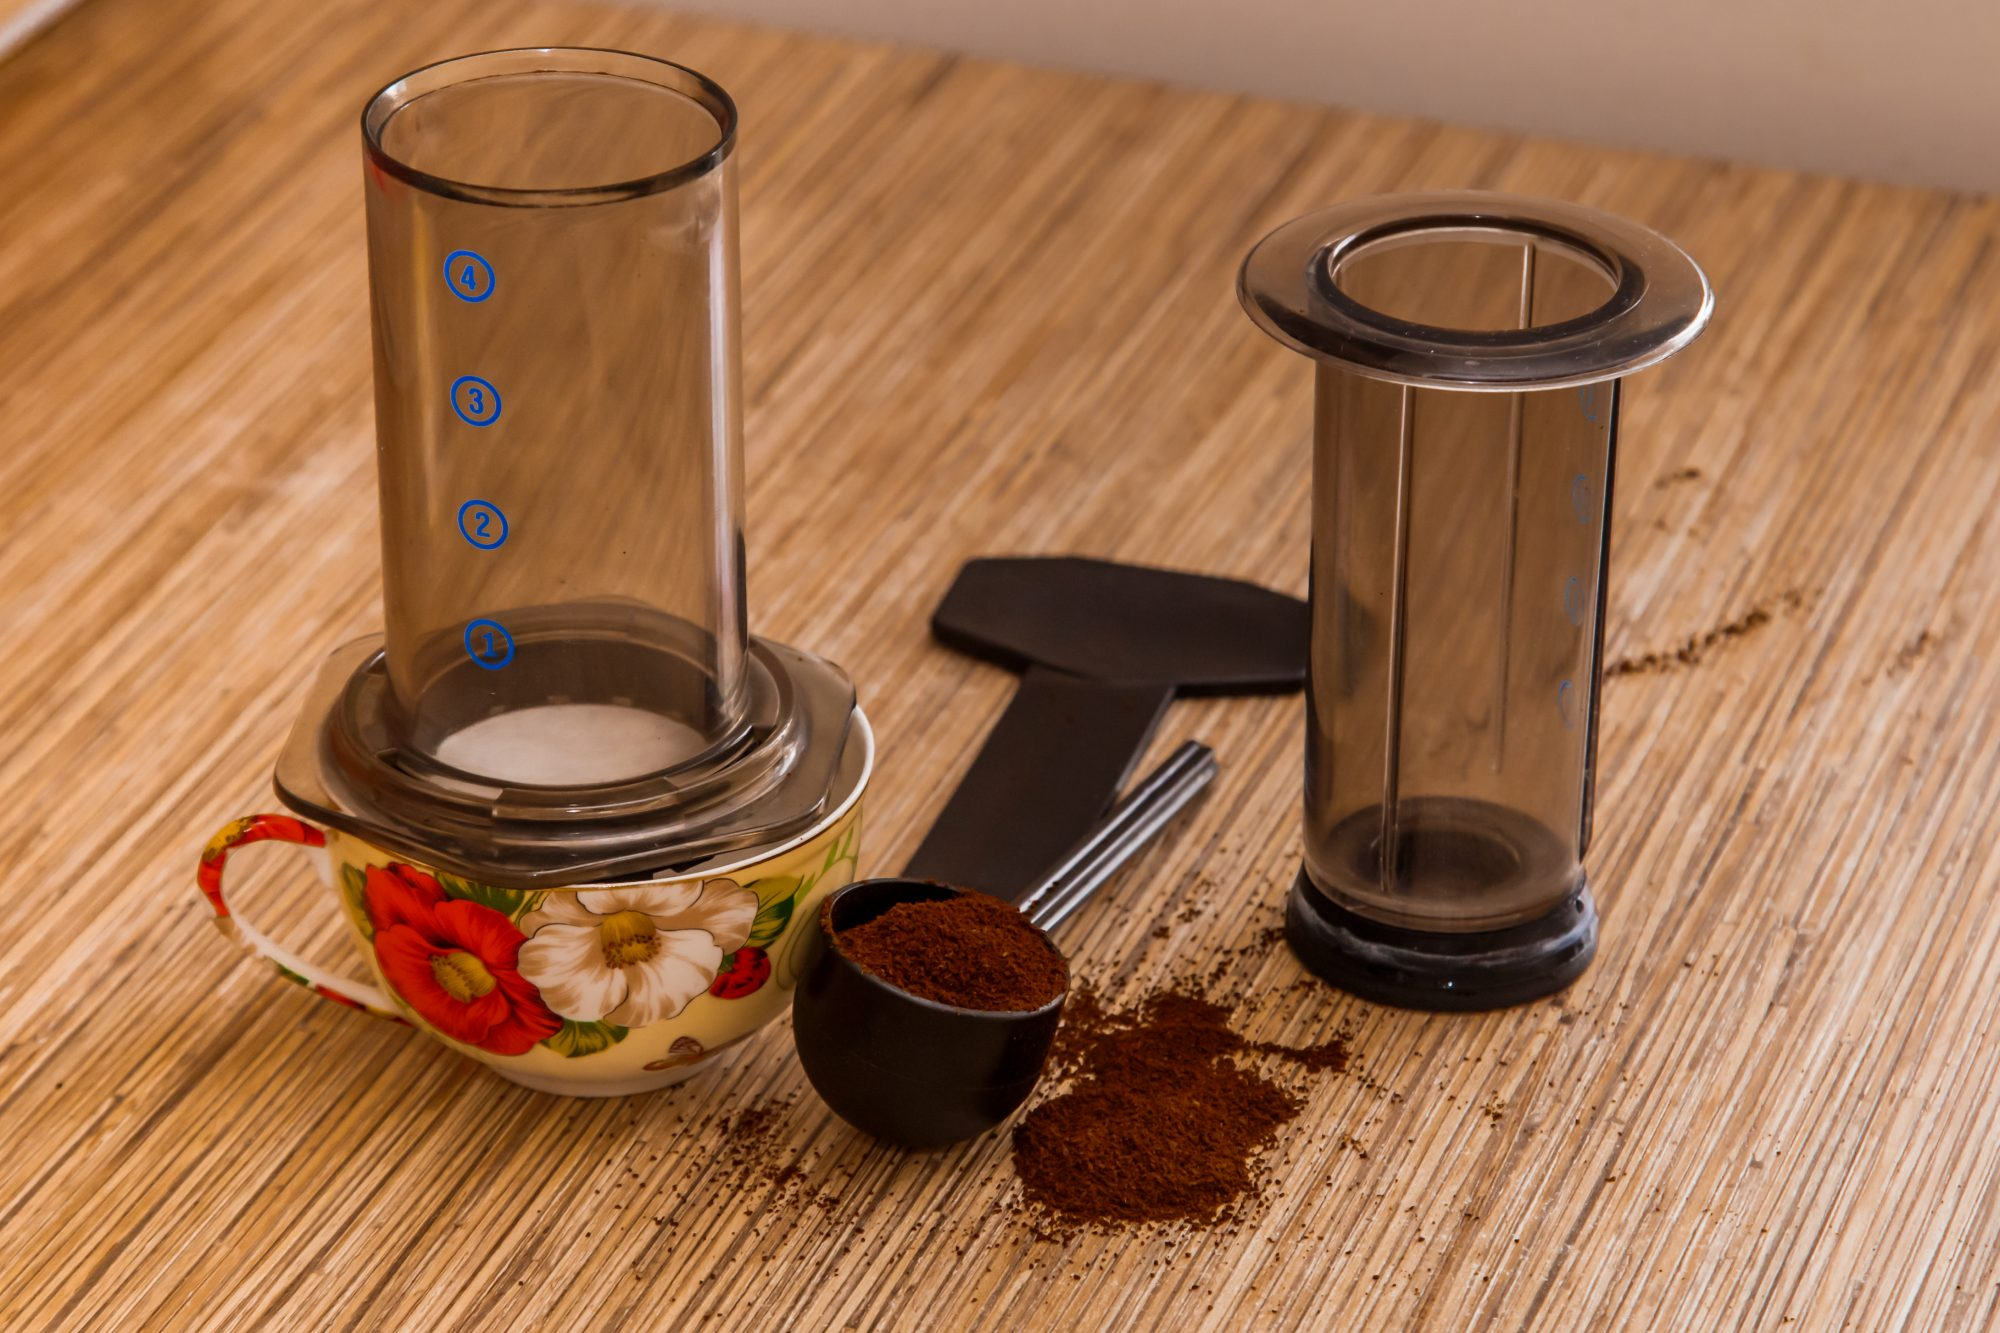 Image: AeroPress coffee maker